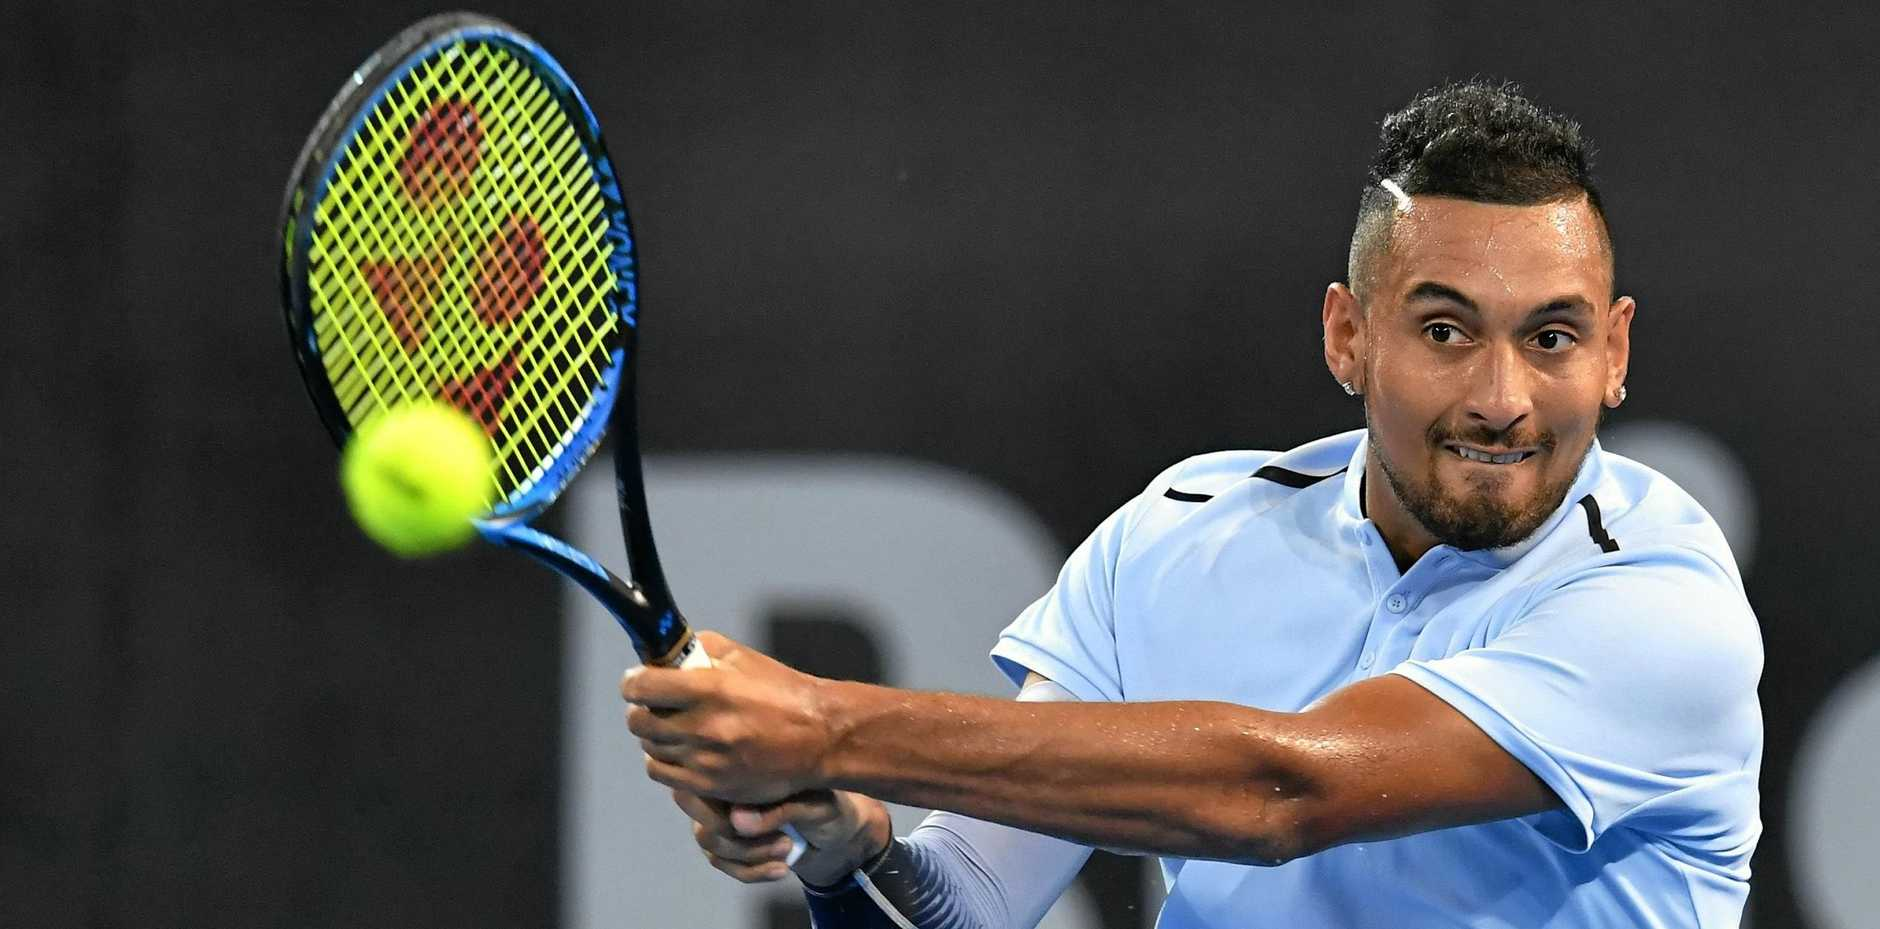 Nick Kyrgios on his way to winning the Brisbane International.